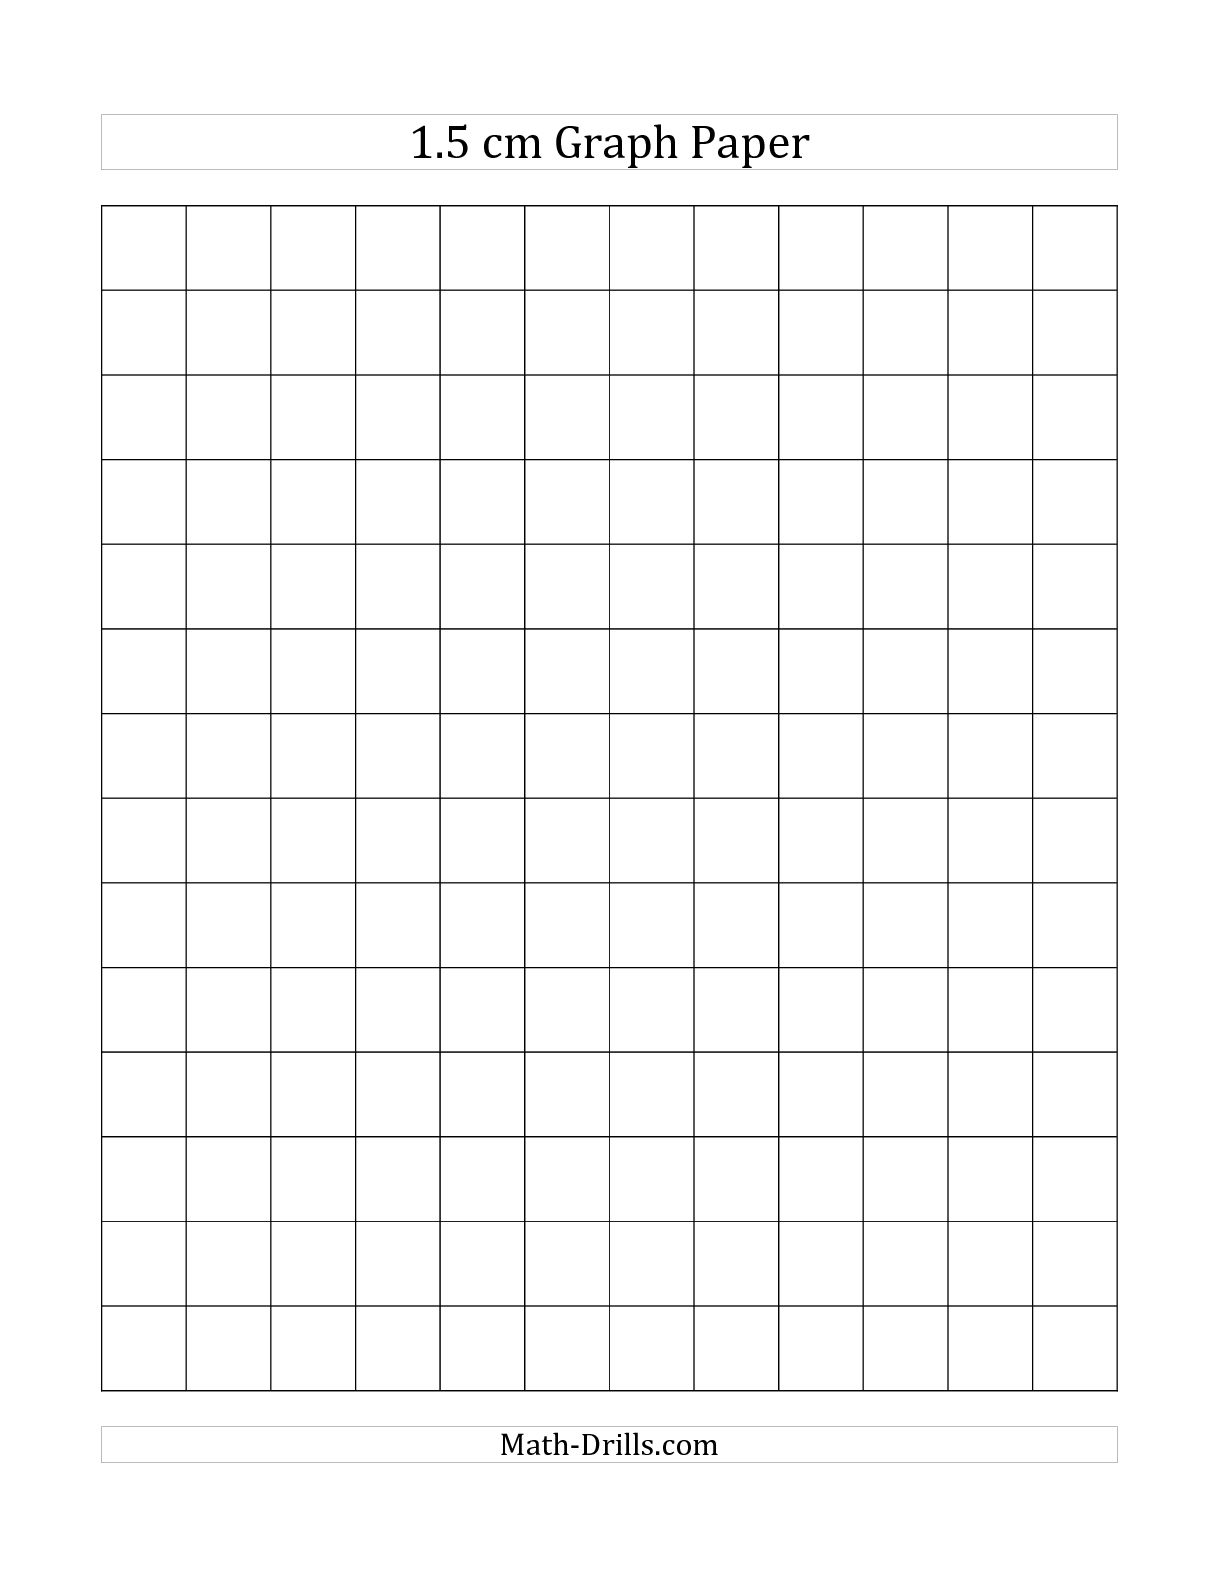 The 1.5 cm Graph Paper (All) Graph Paper